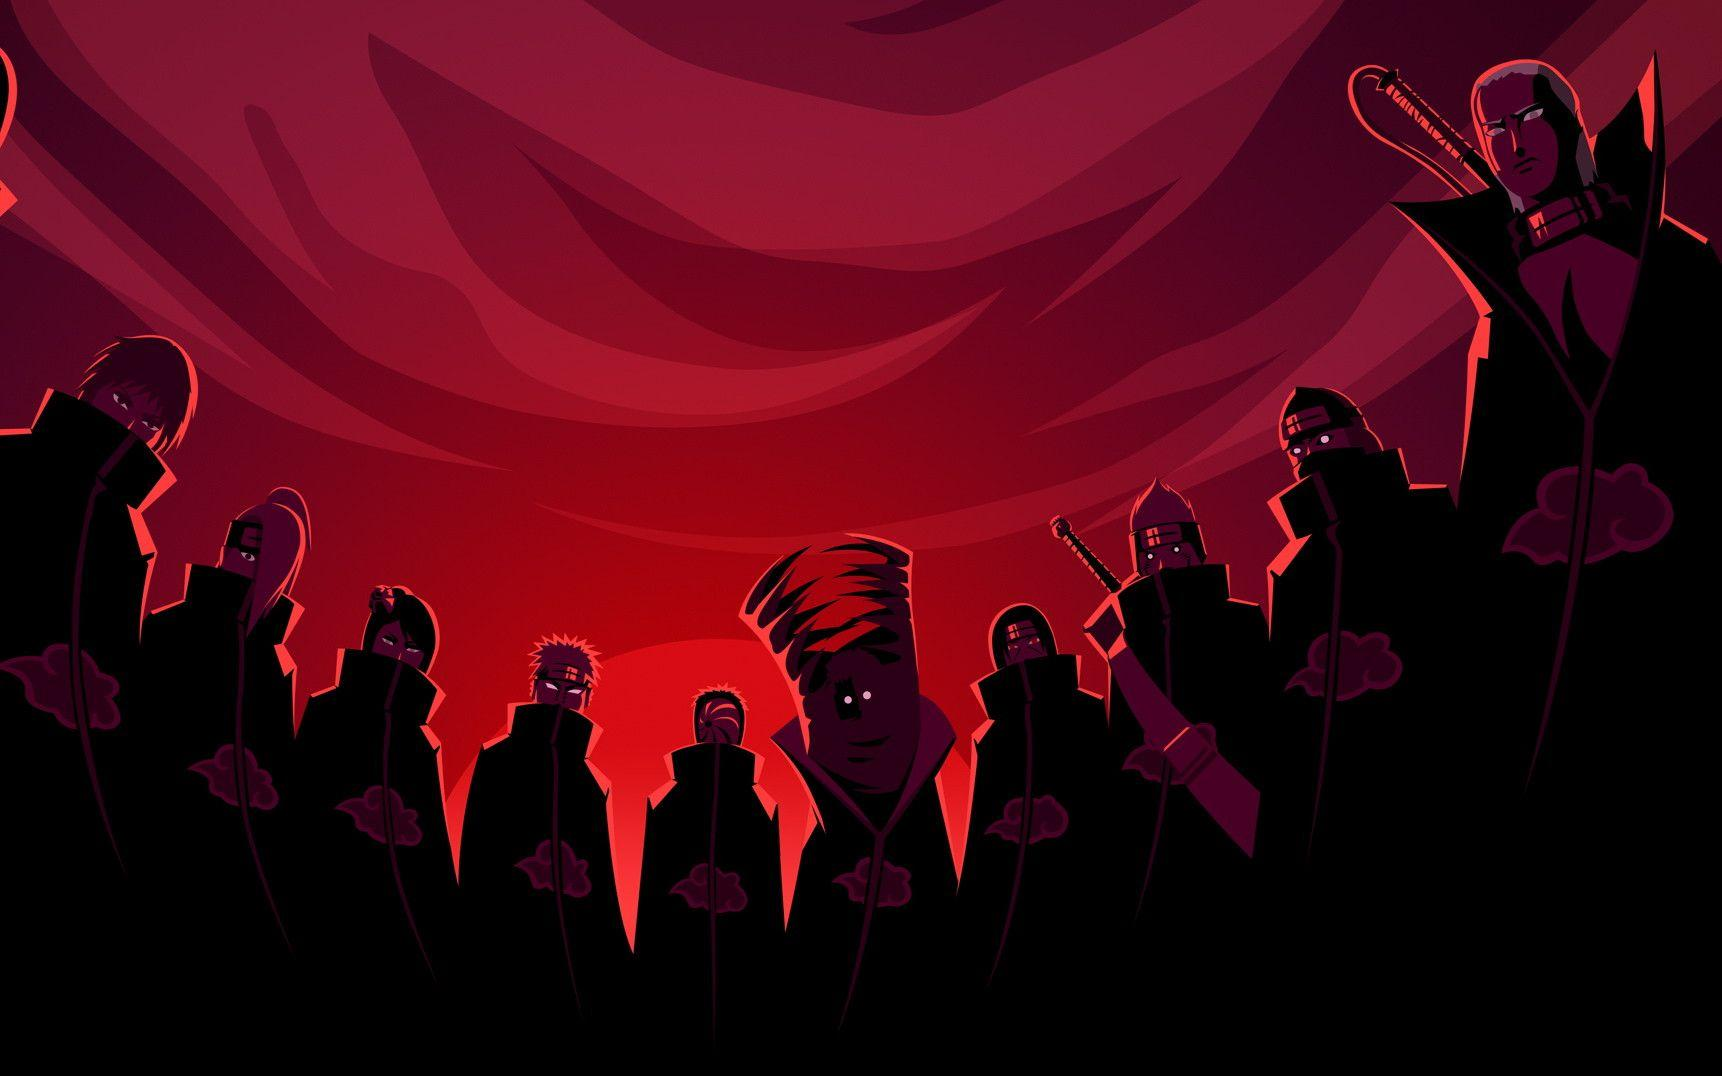 akatsuki backgrounds wallpaper cave